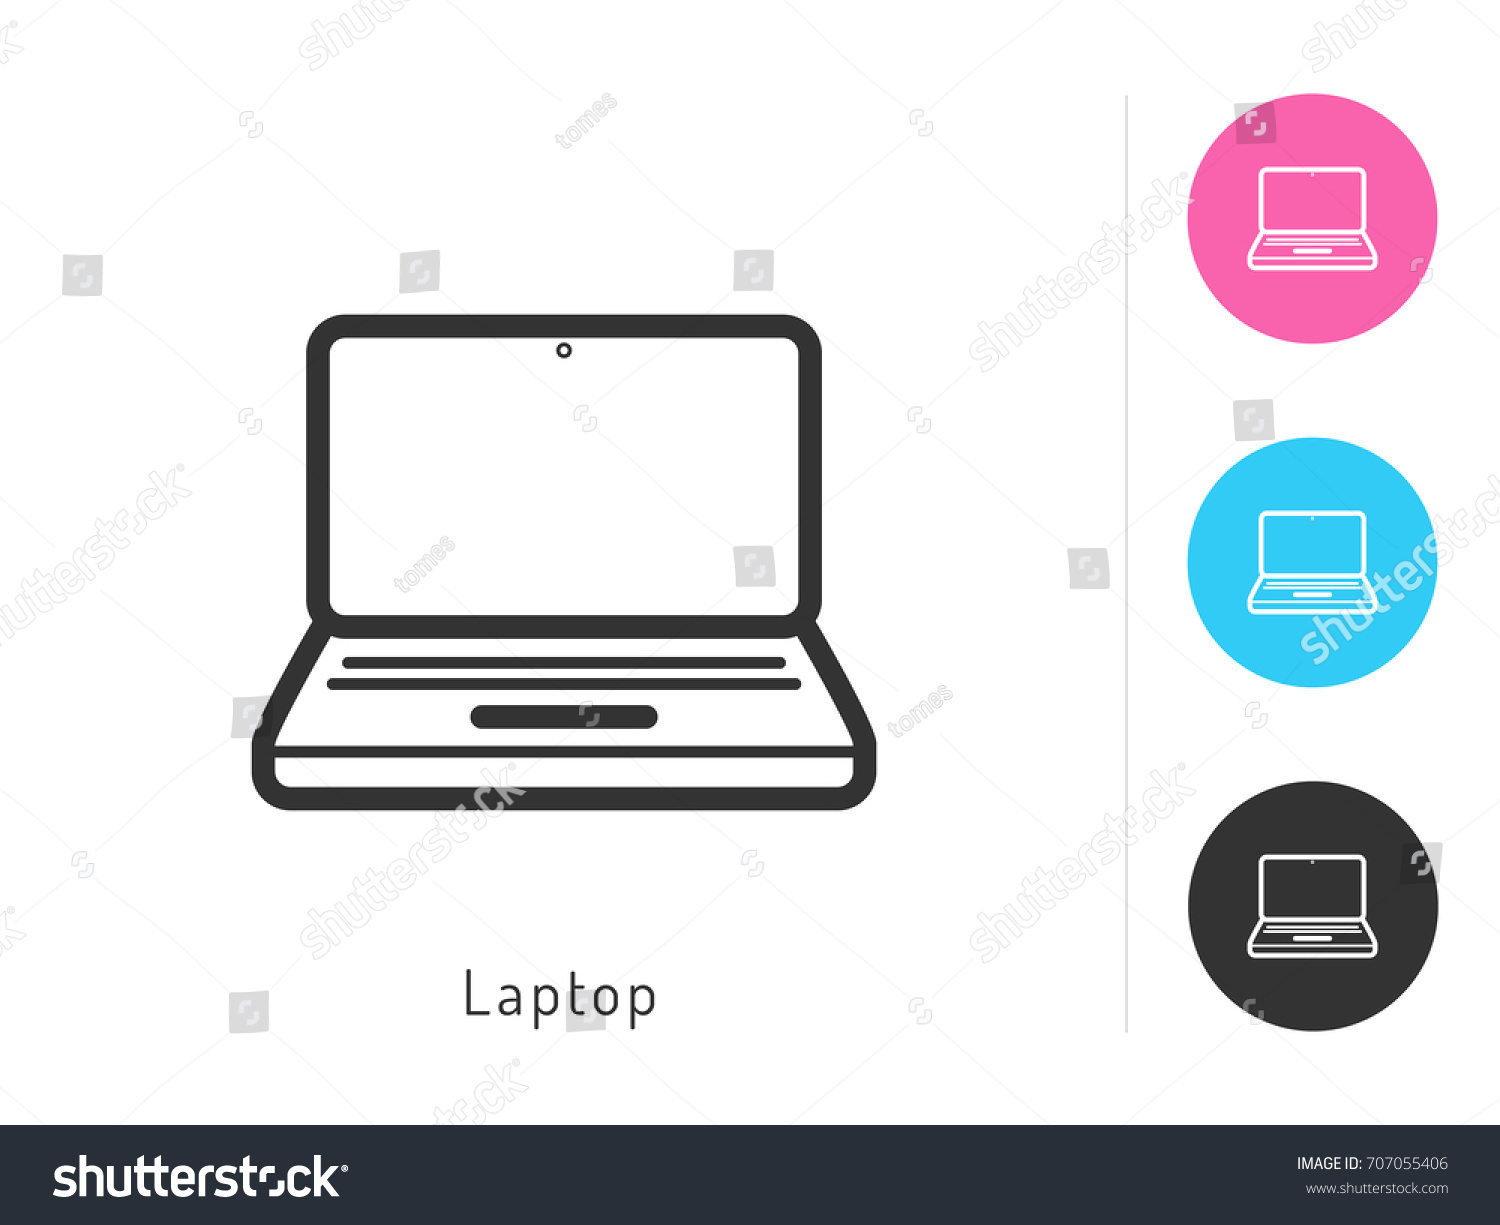 Laptop Icon Vector Laptop Symbol Your Stock Vector Royalty Free